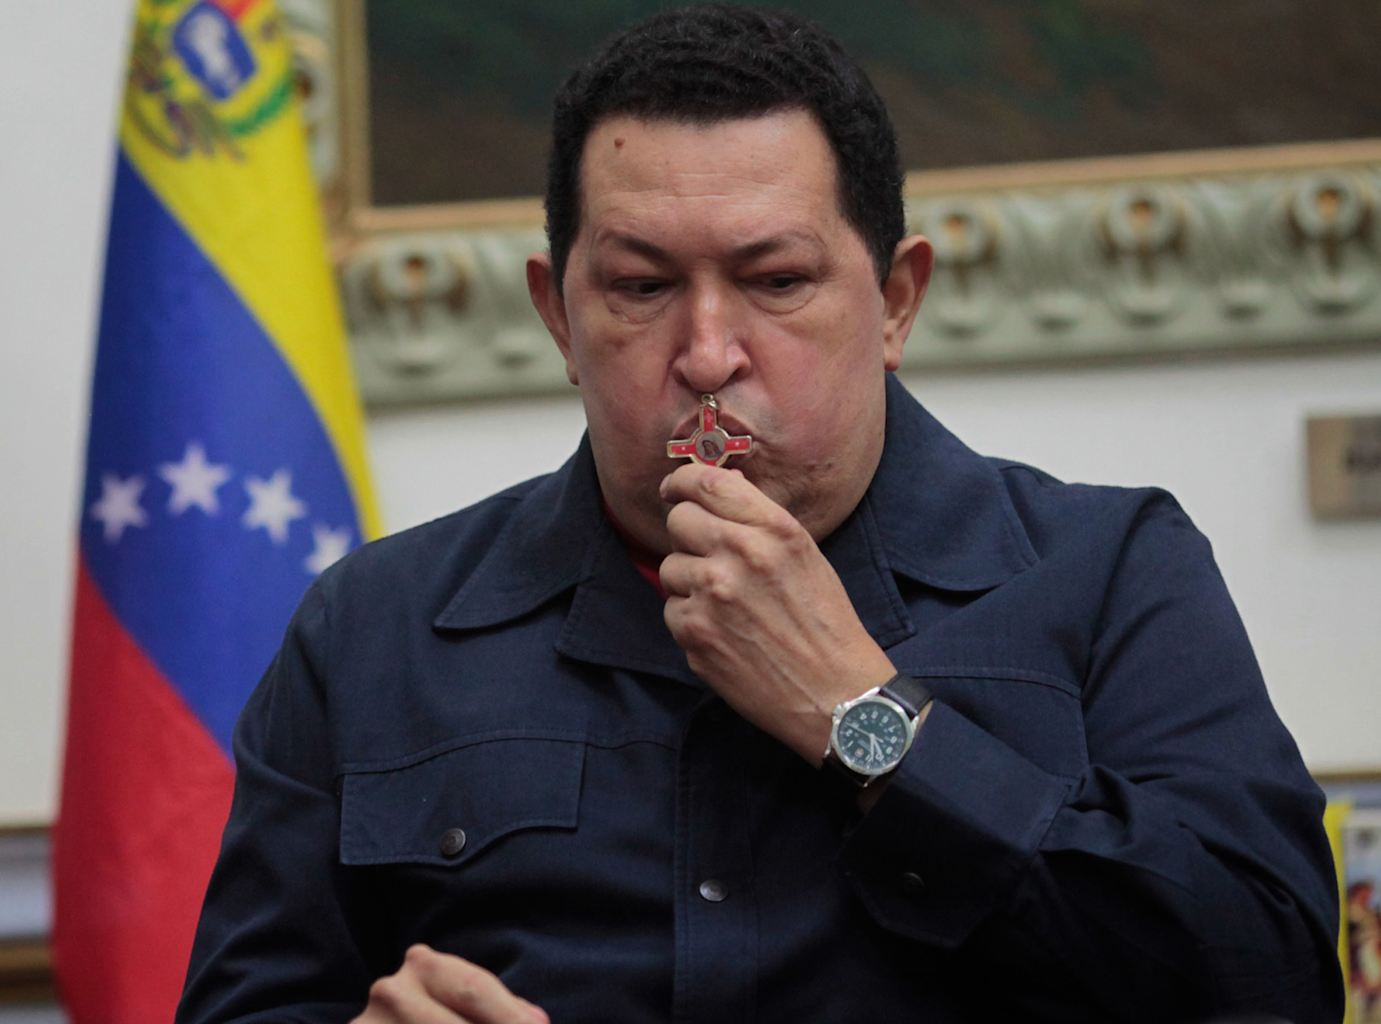 Venezuela's President Hugo Chavez kisses a crucifix during a televised speech form his office at Miraflores Presidential palace in Caracas, Venezuela, Saturday, Dec. 8, 2012.